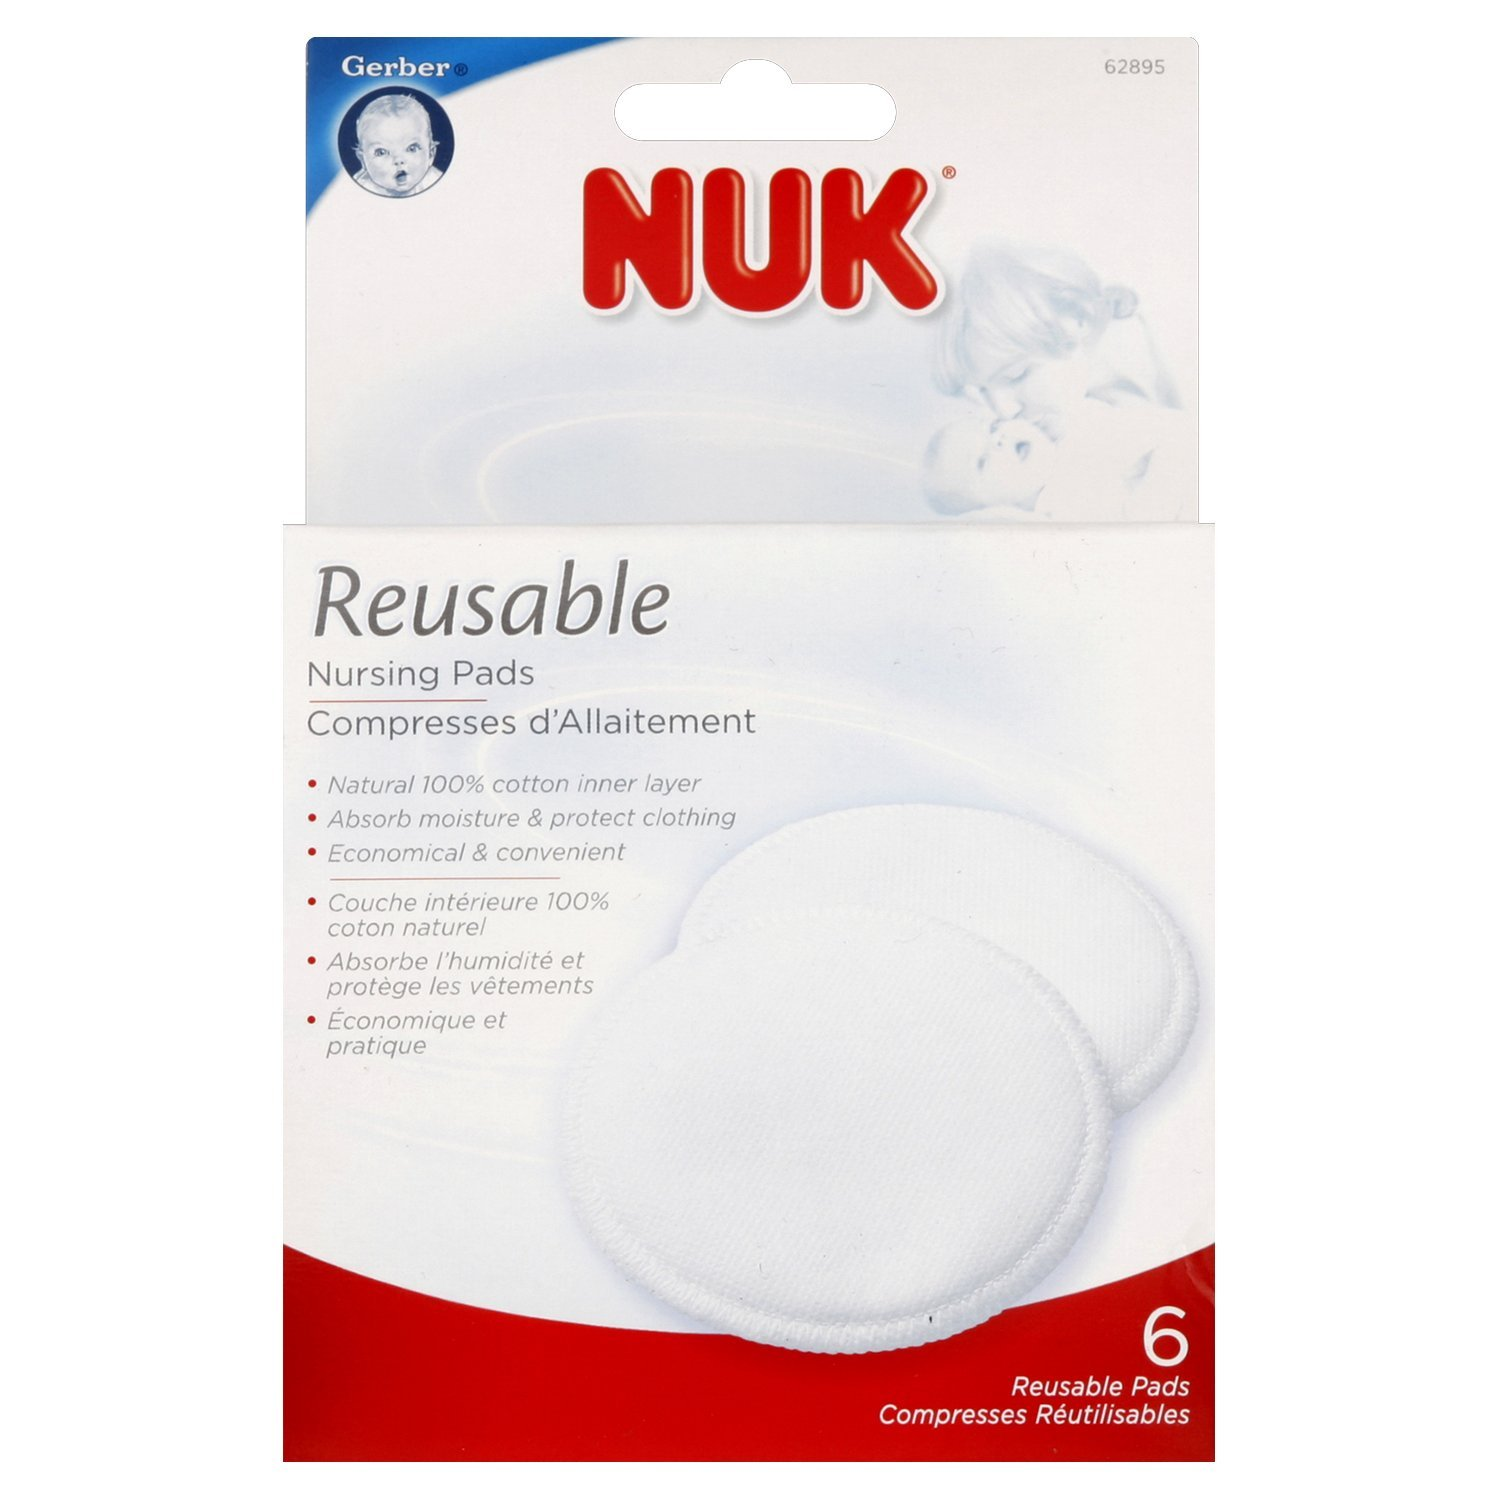 NUK Reusable Nursing Pads, 6 Pack